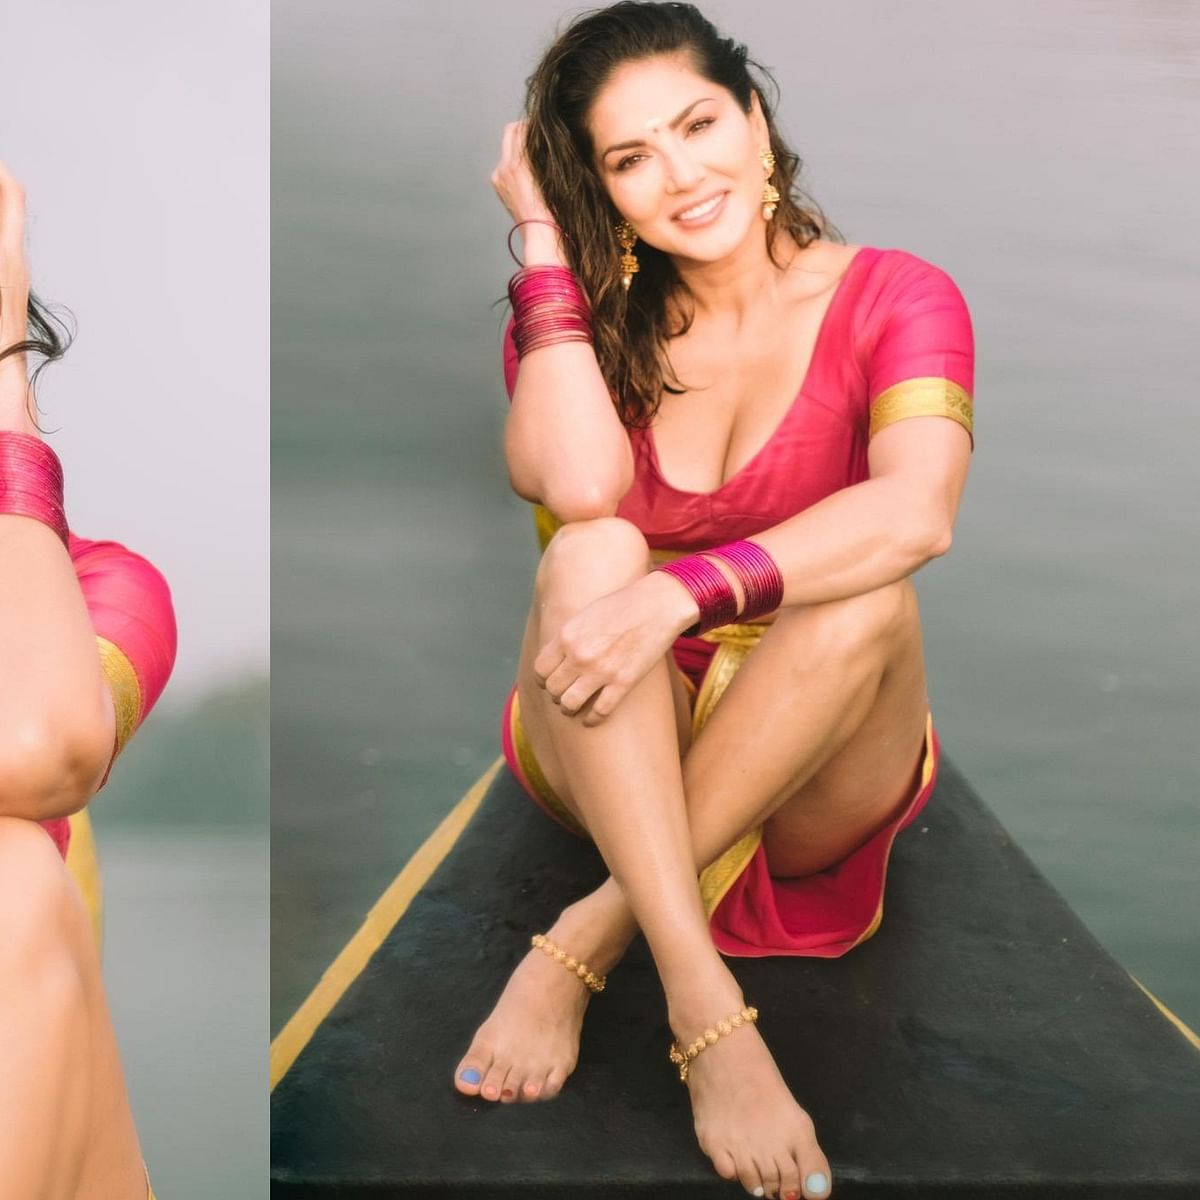 Sunny Leone sets the internet ablaze with her traditional photoshoot in Kerala